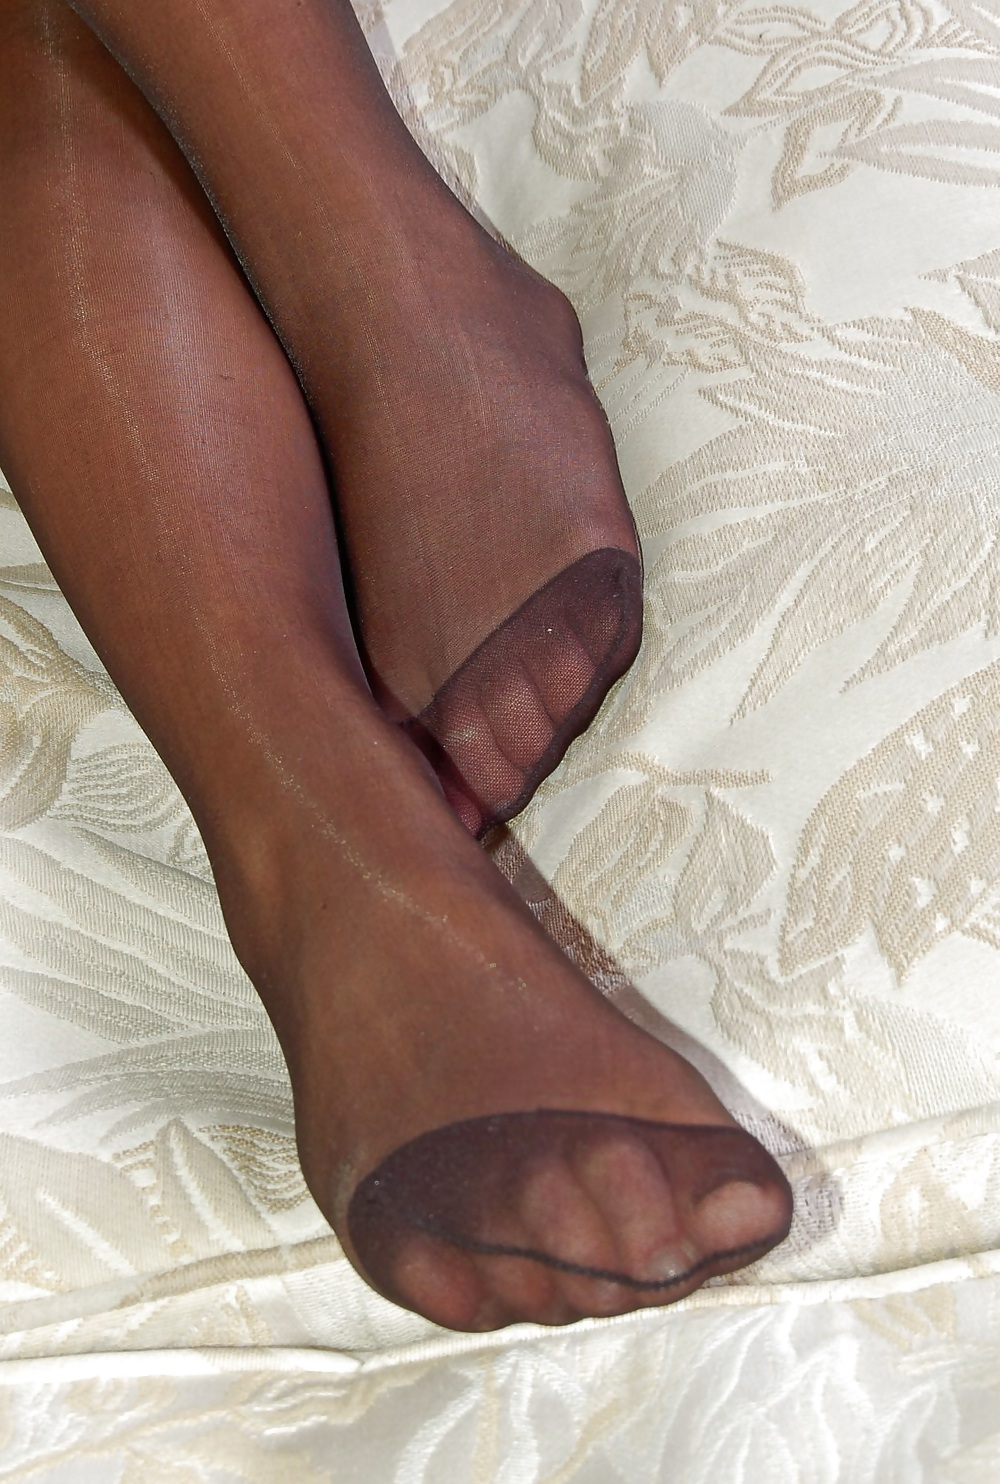 Amateur Woman shows Pantyhosefeet porn pictures